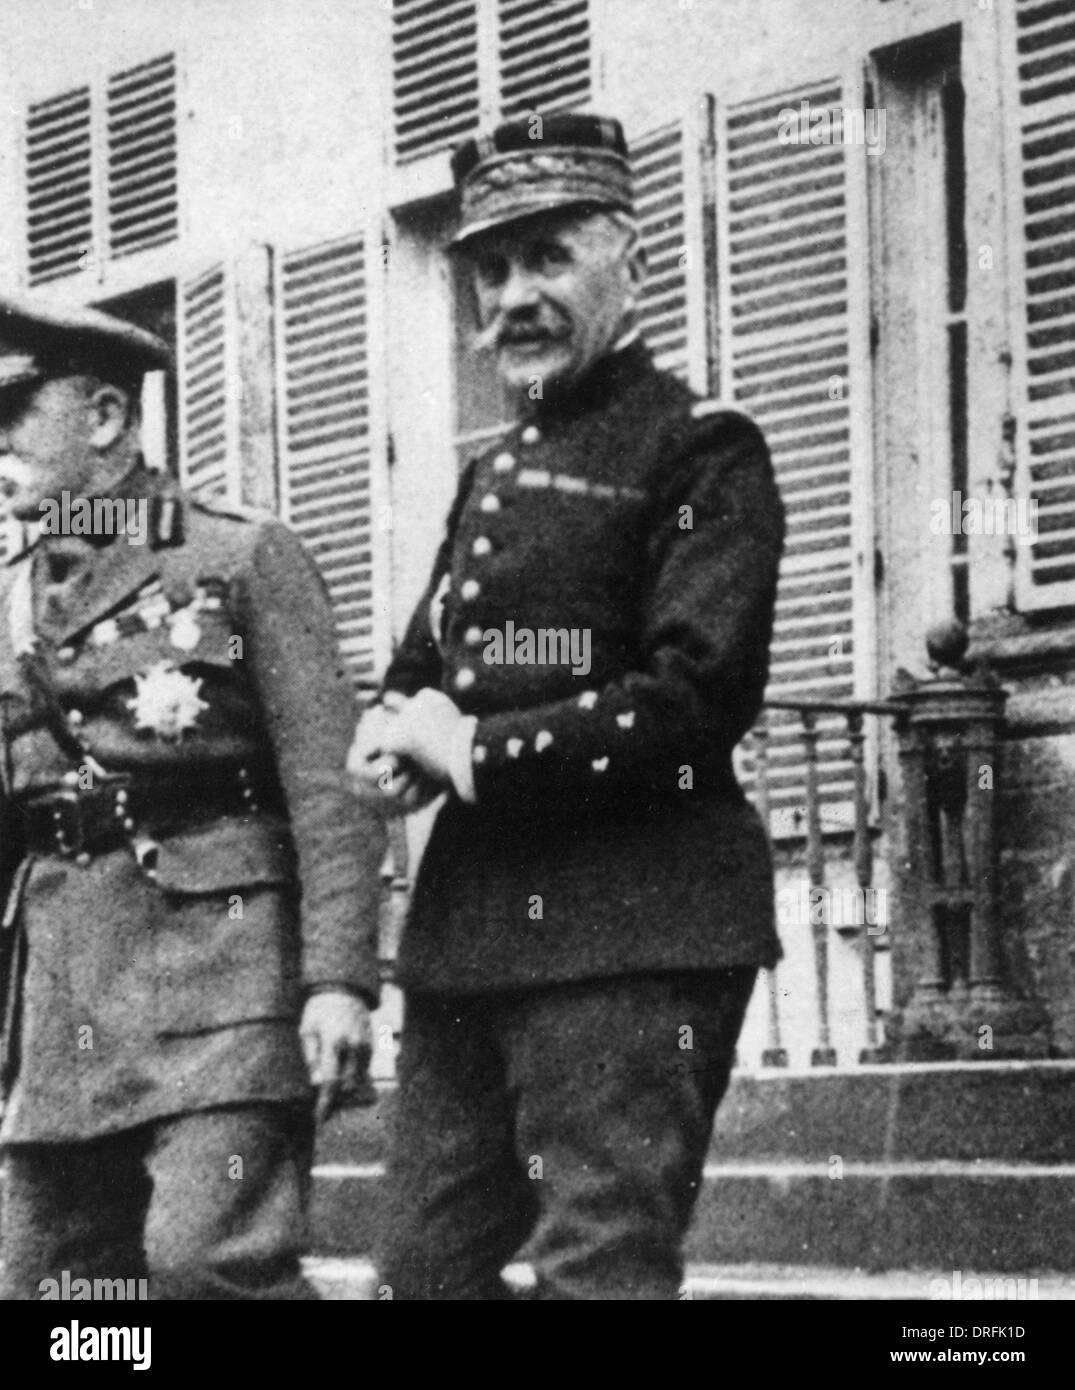 Marshal Foch, General in the French Army during WW1 - Stock Image